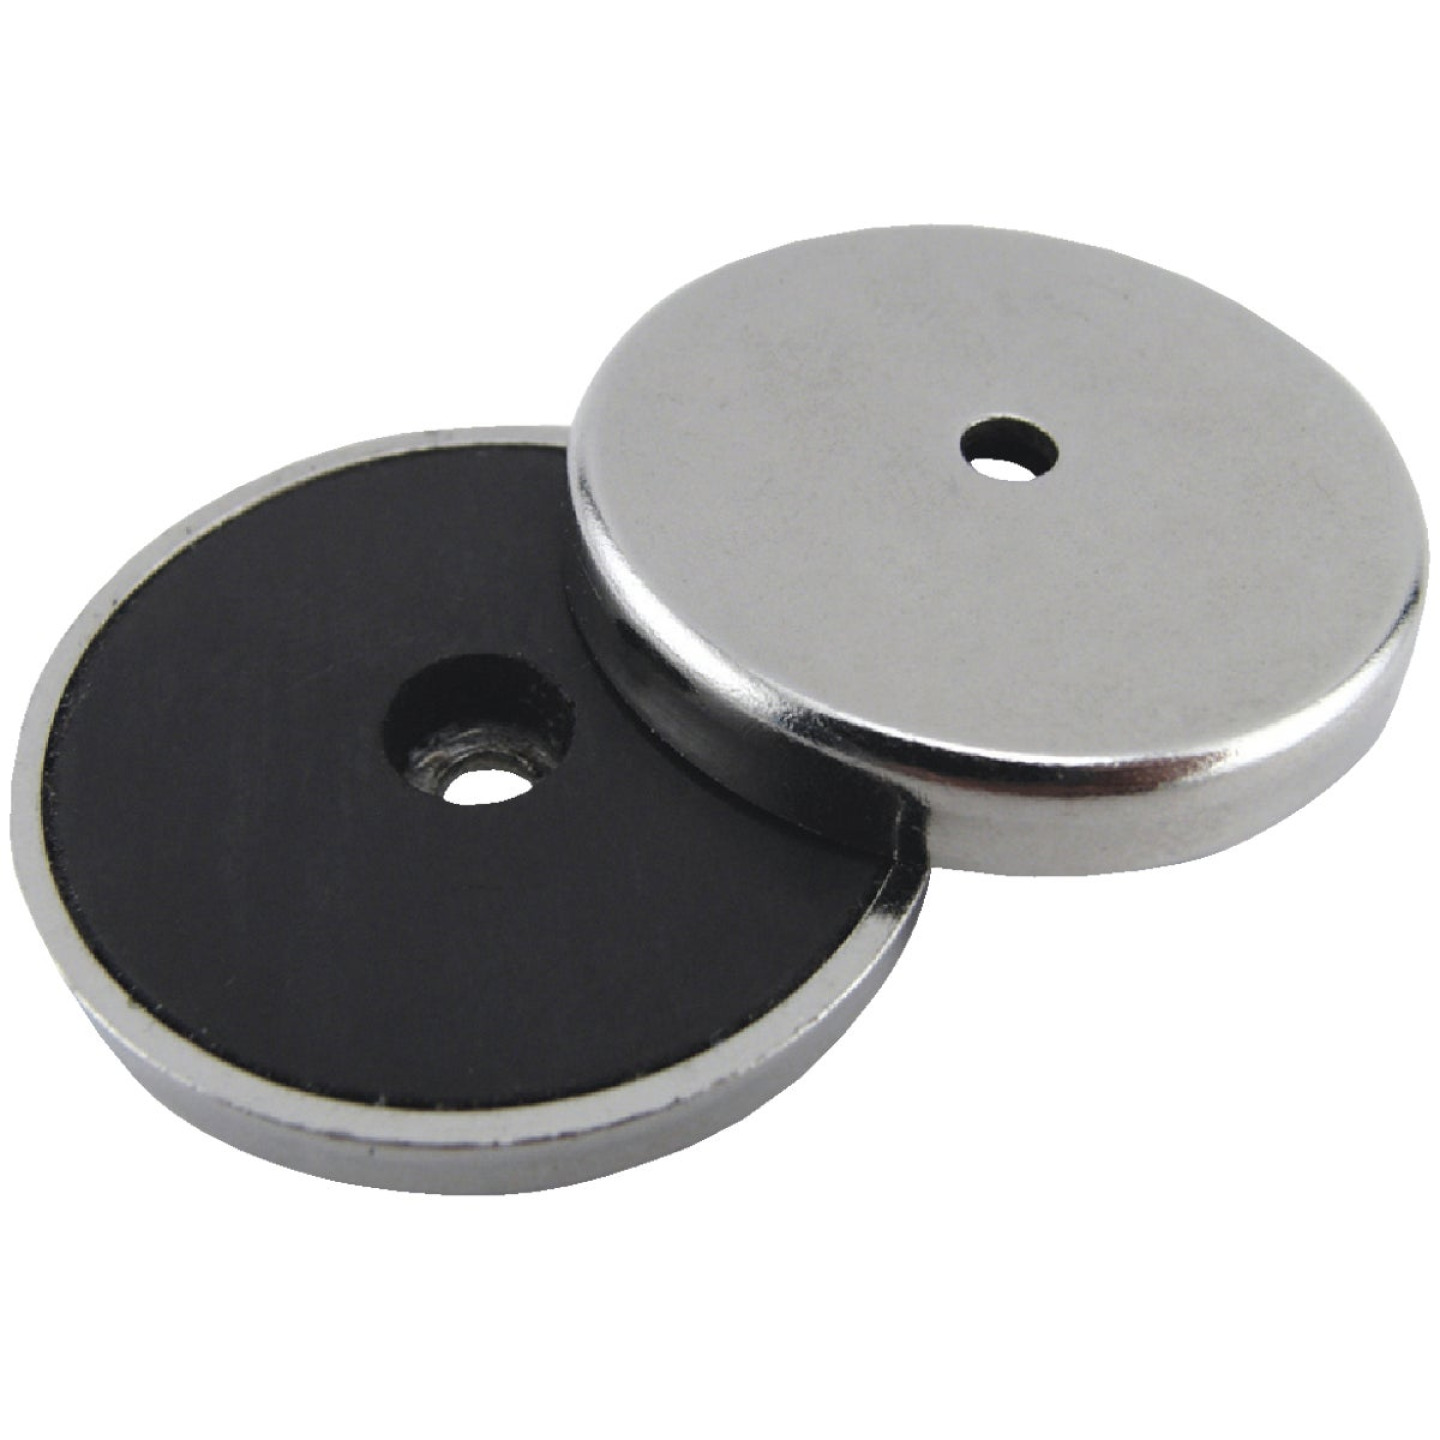 Master Magnetics 1-3/16 in. 4 Lb. Magnetic Base Image 1